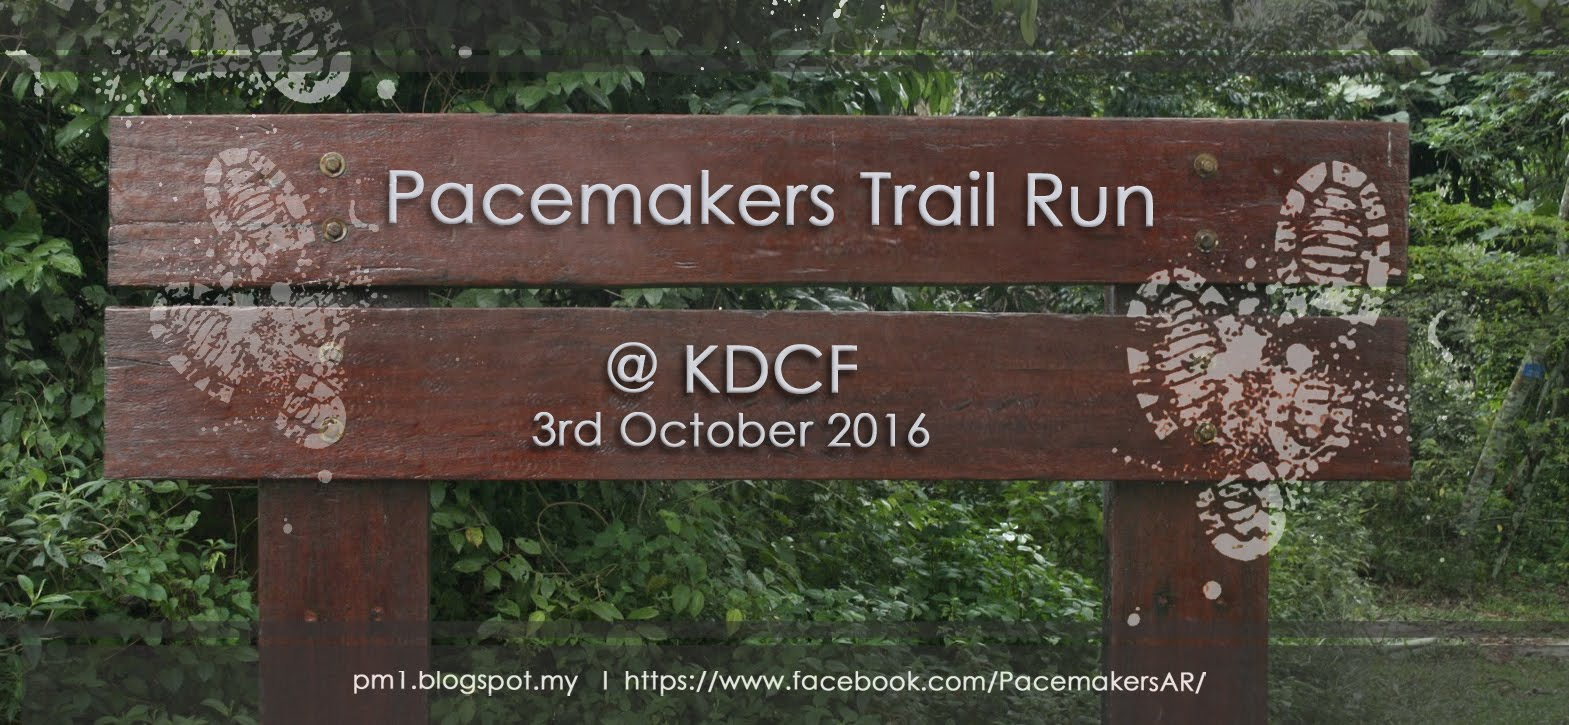 Pacemakers Trail Run 2016